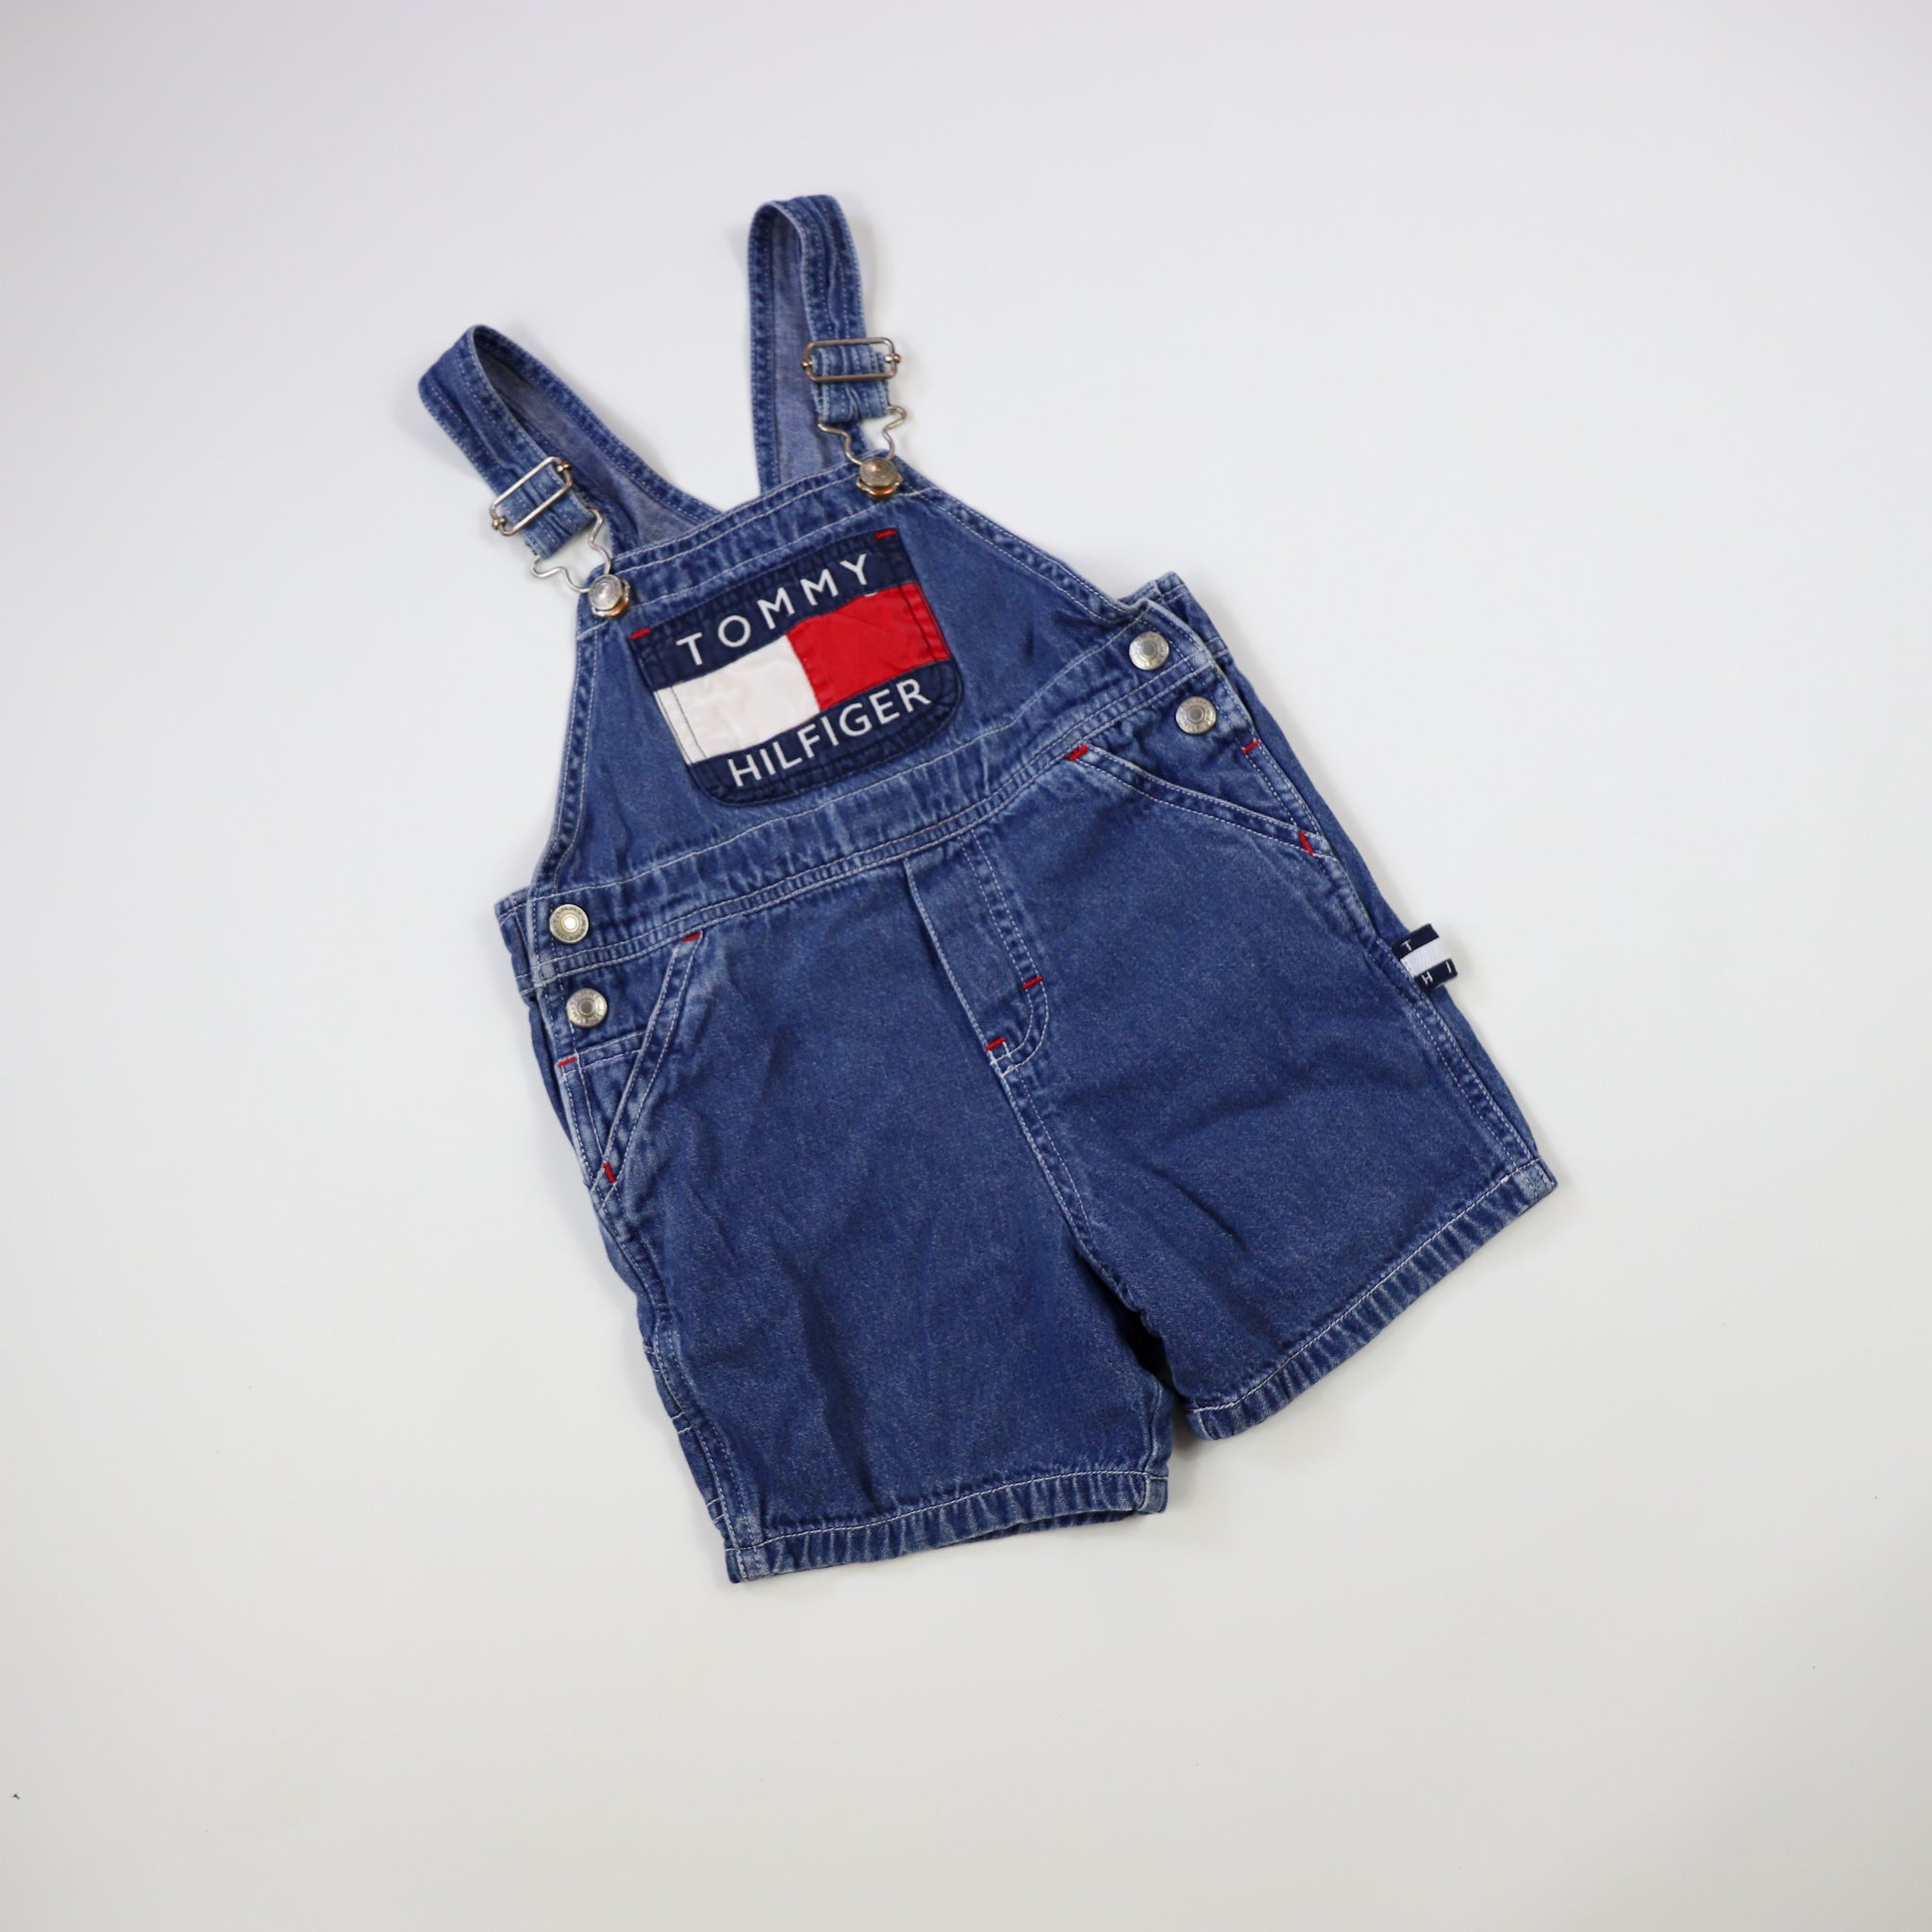 Vintage Tommy Hilfiger Spell Out Shortalls Size 2T